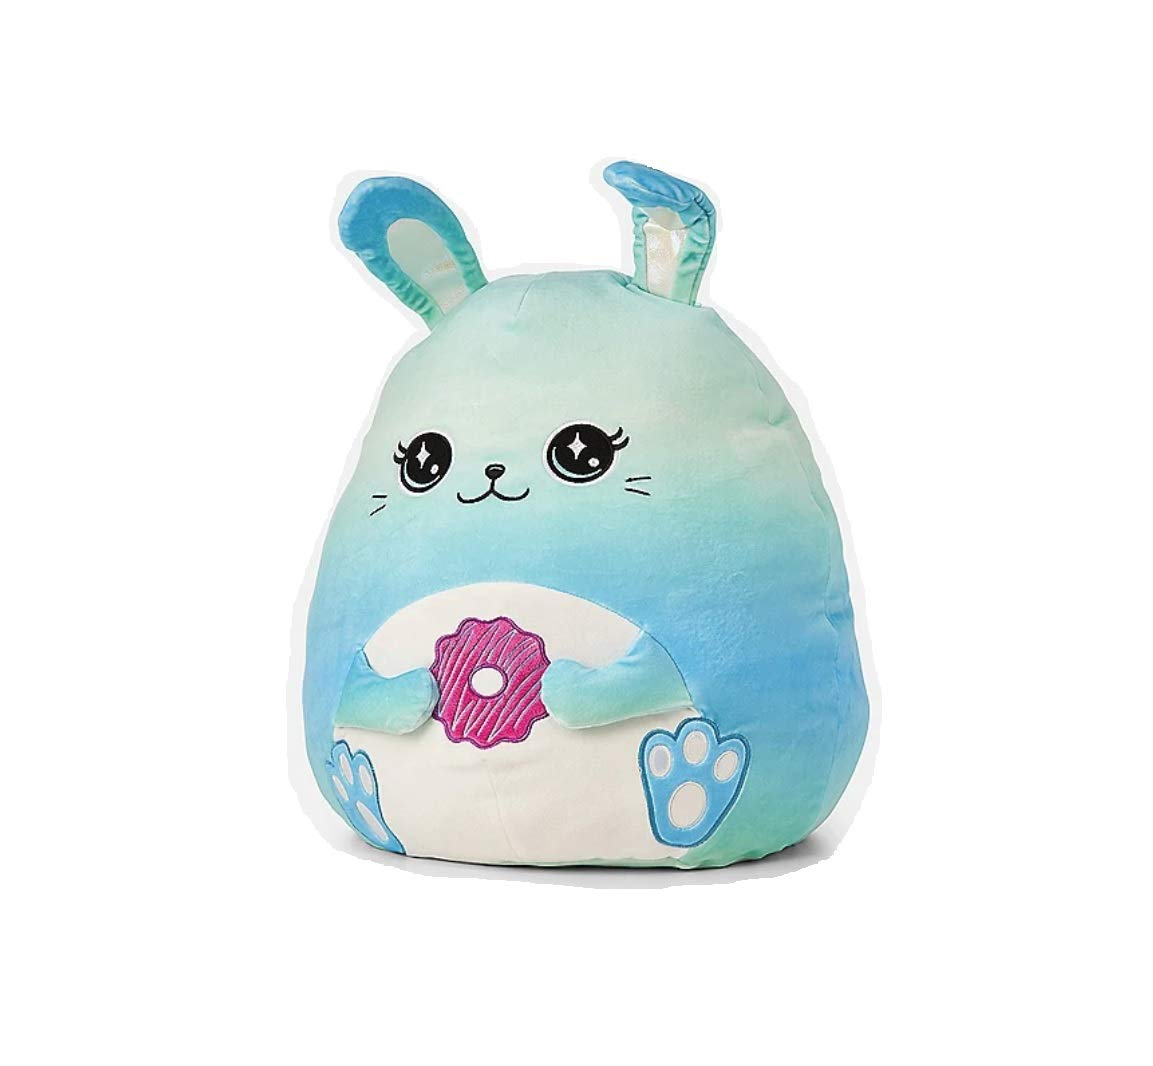 Justice Squishmallow 16'' Large Icicle Blue Vanilla Scented Blue Bunny Super Soft Plush Pillow Stuffed Animal